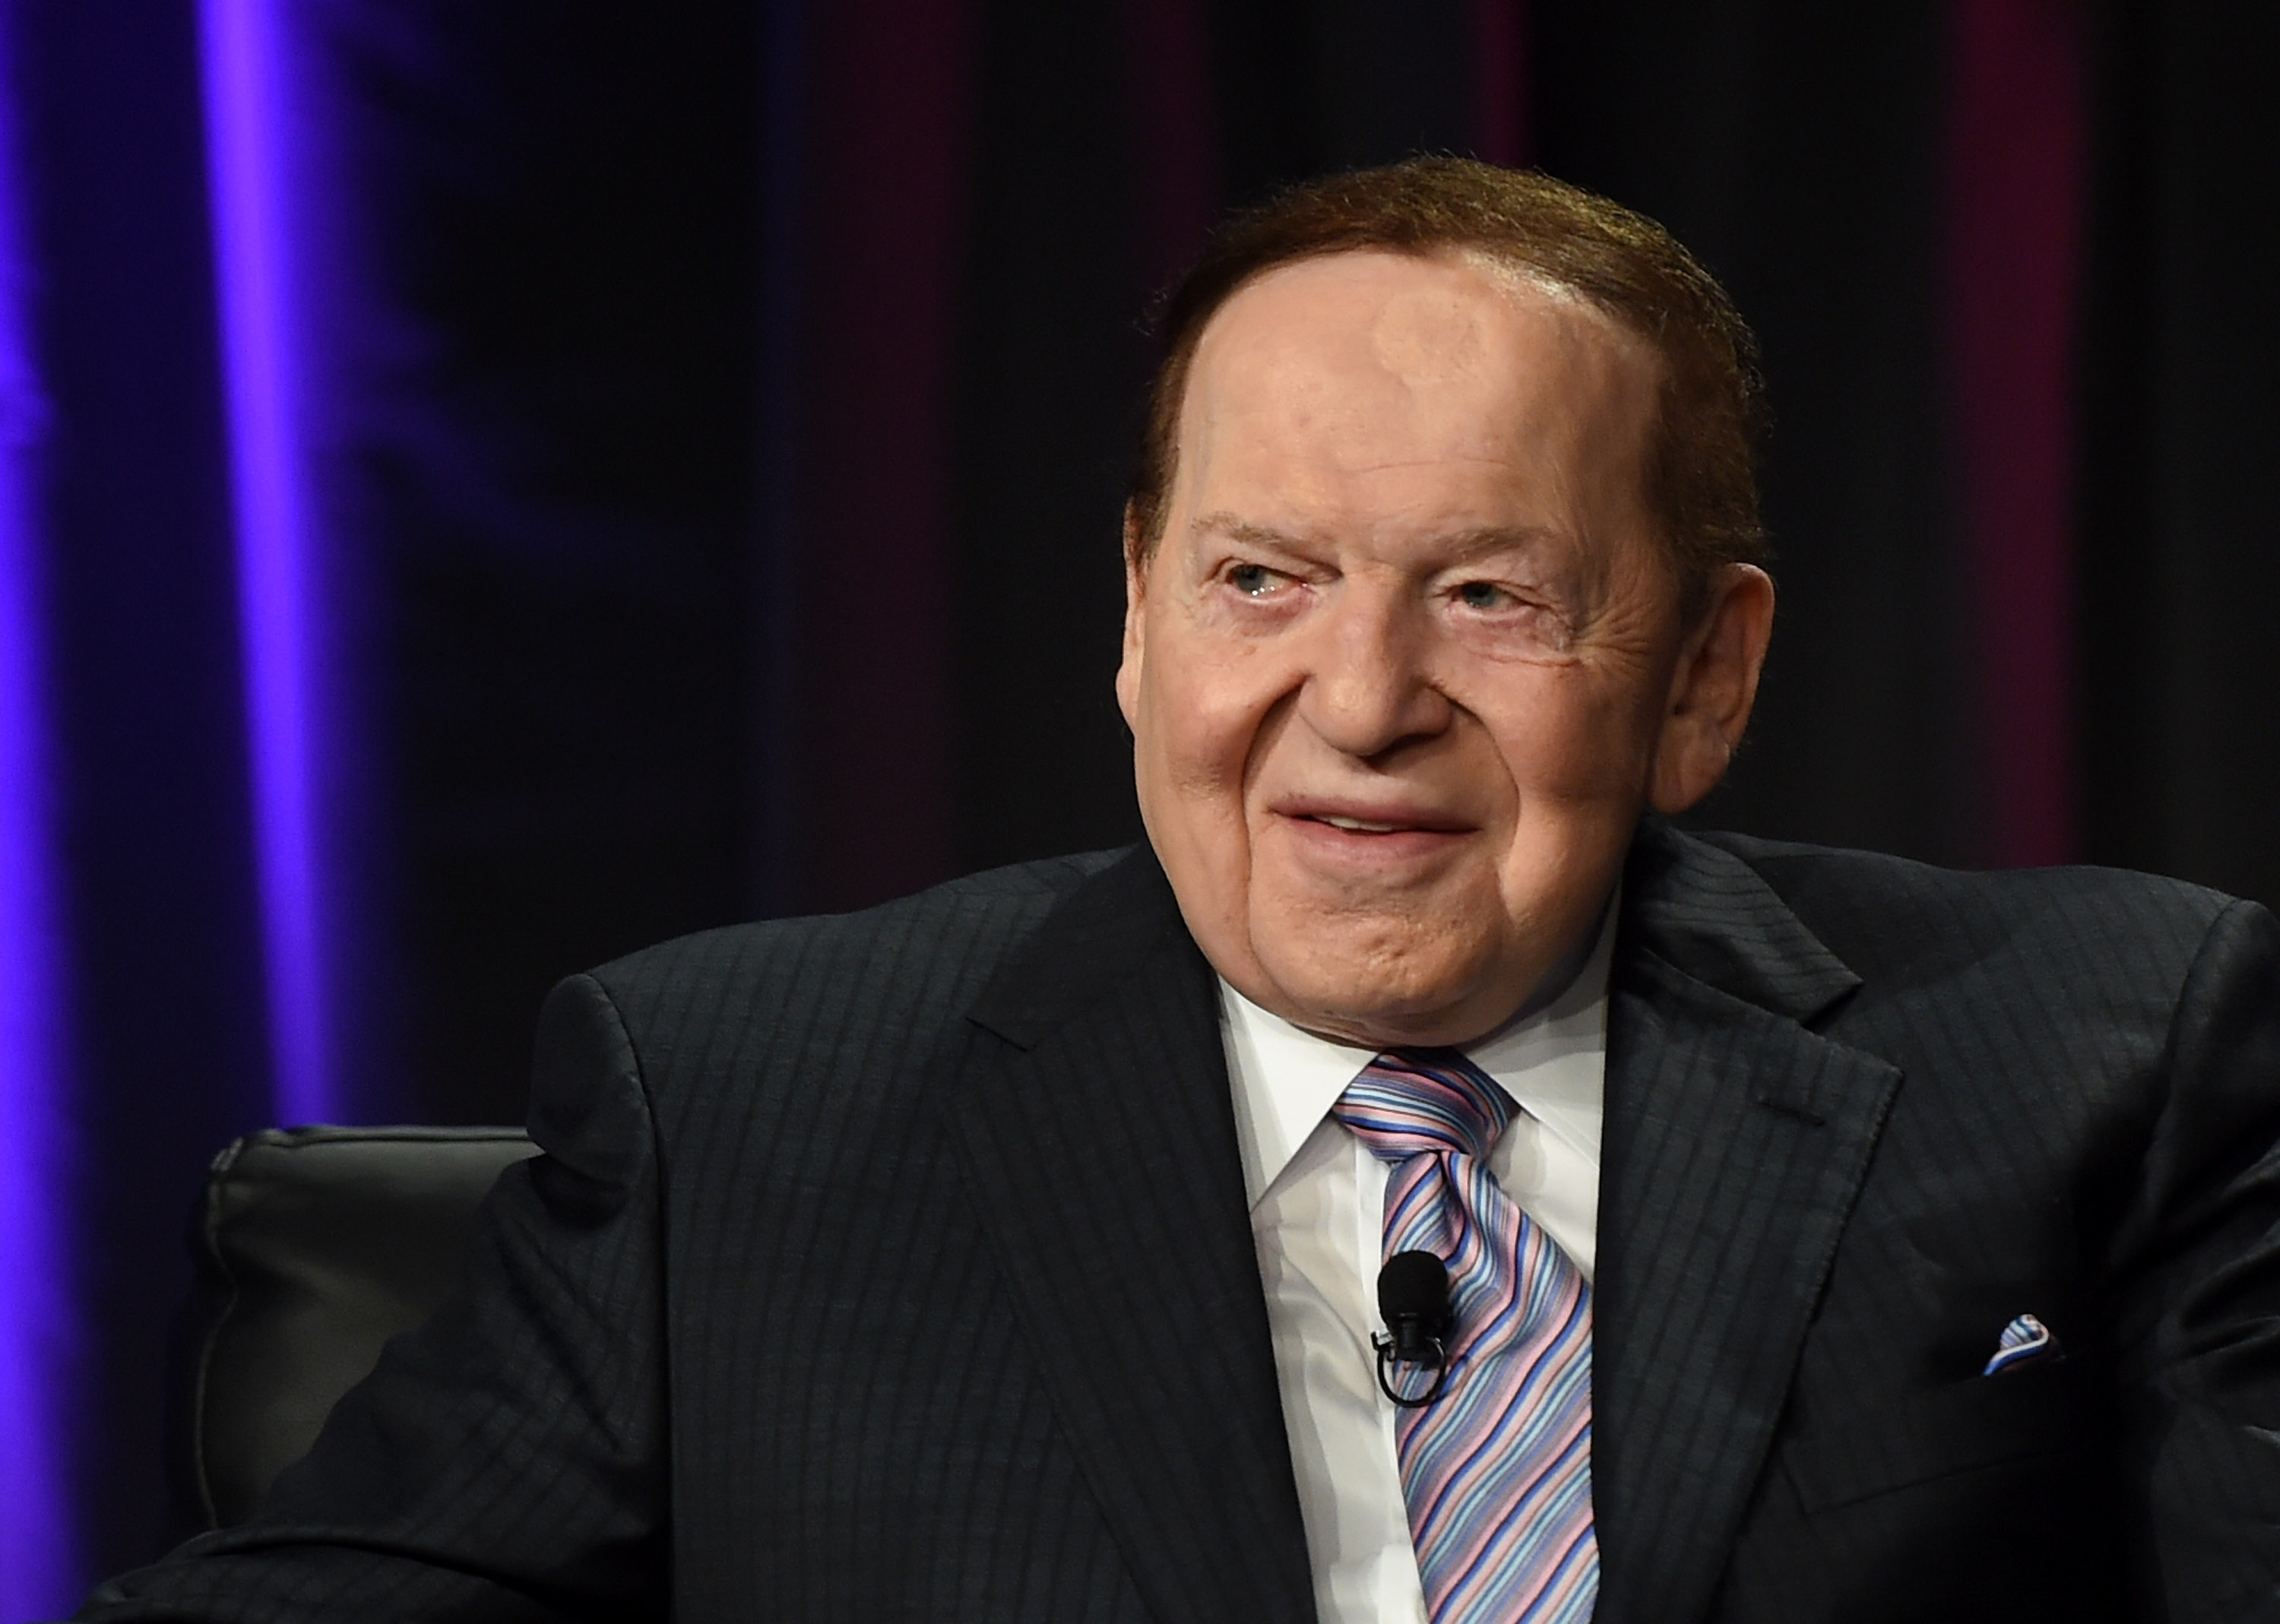 Las Vegas Sands Corp. Chairman and CEO Sheldon Adelson speaks at the Global Gaming Expo (G2E) 2014 at the Venetian Las Vegas in Las Vegas on Oct. 1, 2014